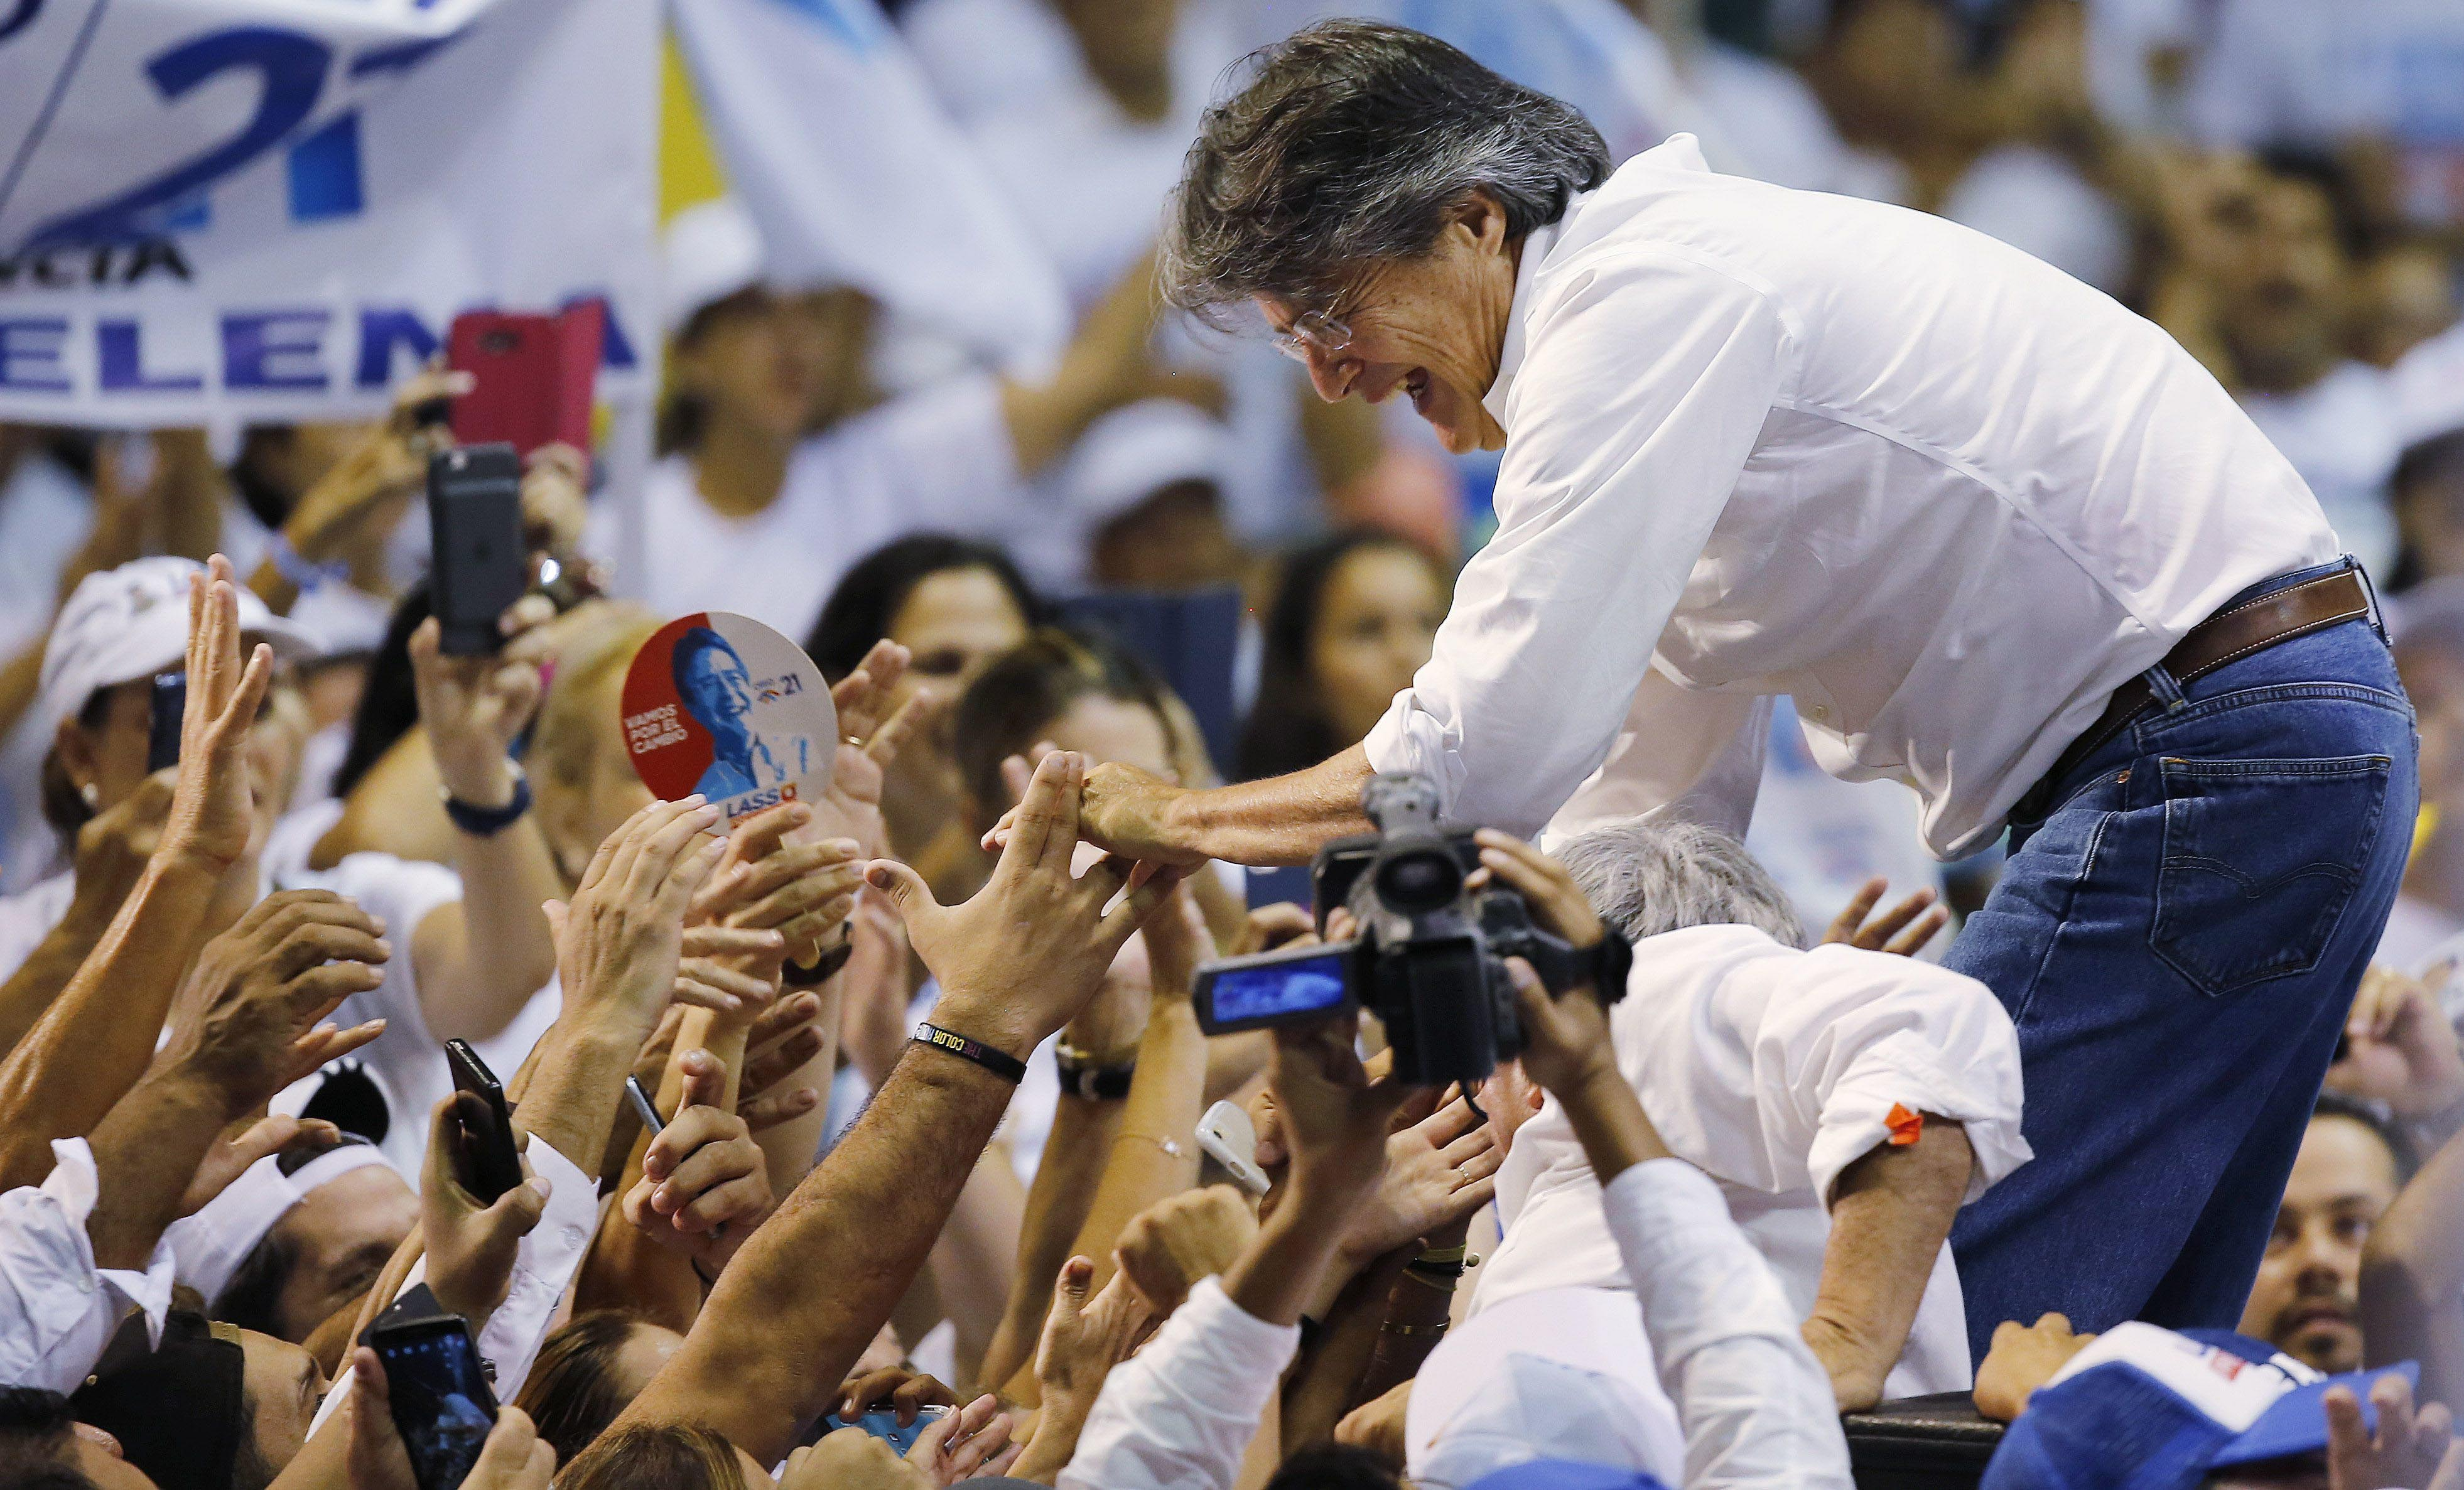 Guillermo Lasso, presidential candidate for the CREO political party, greets the crowd during his closing campaign event ahead of Sunday's presidential runoff election in Guayaquil, Colombia, on Thursday, March 30, 2017. Photo: AP